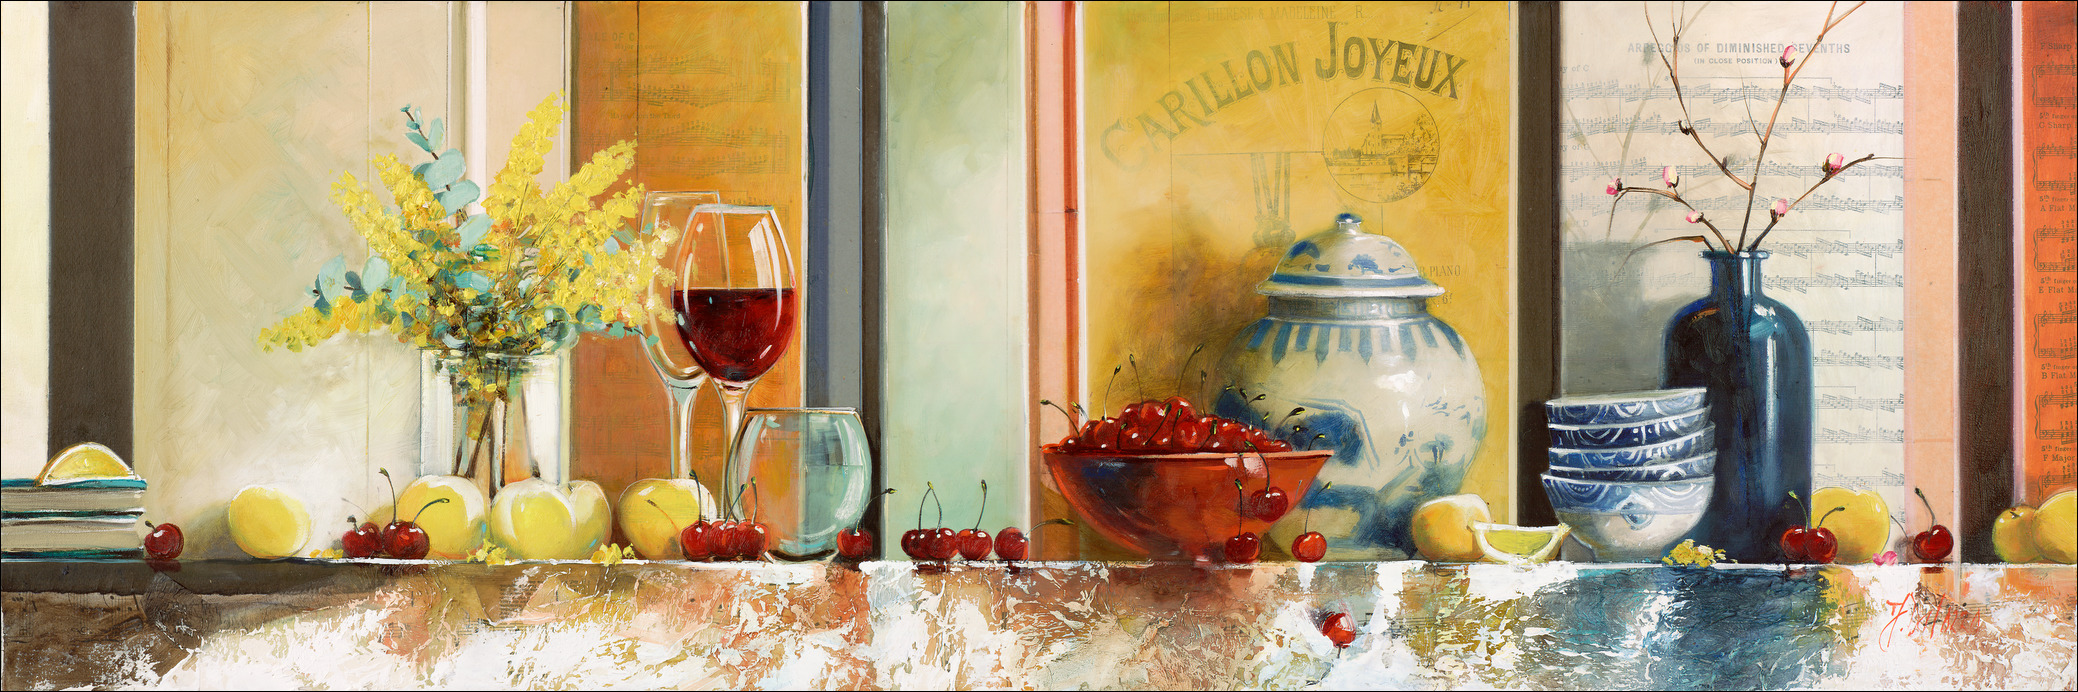 Wattle-Cherries-Still-Life-Judith-Dalozzo